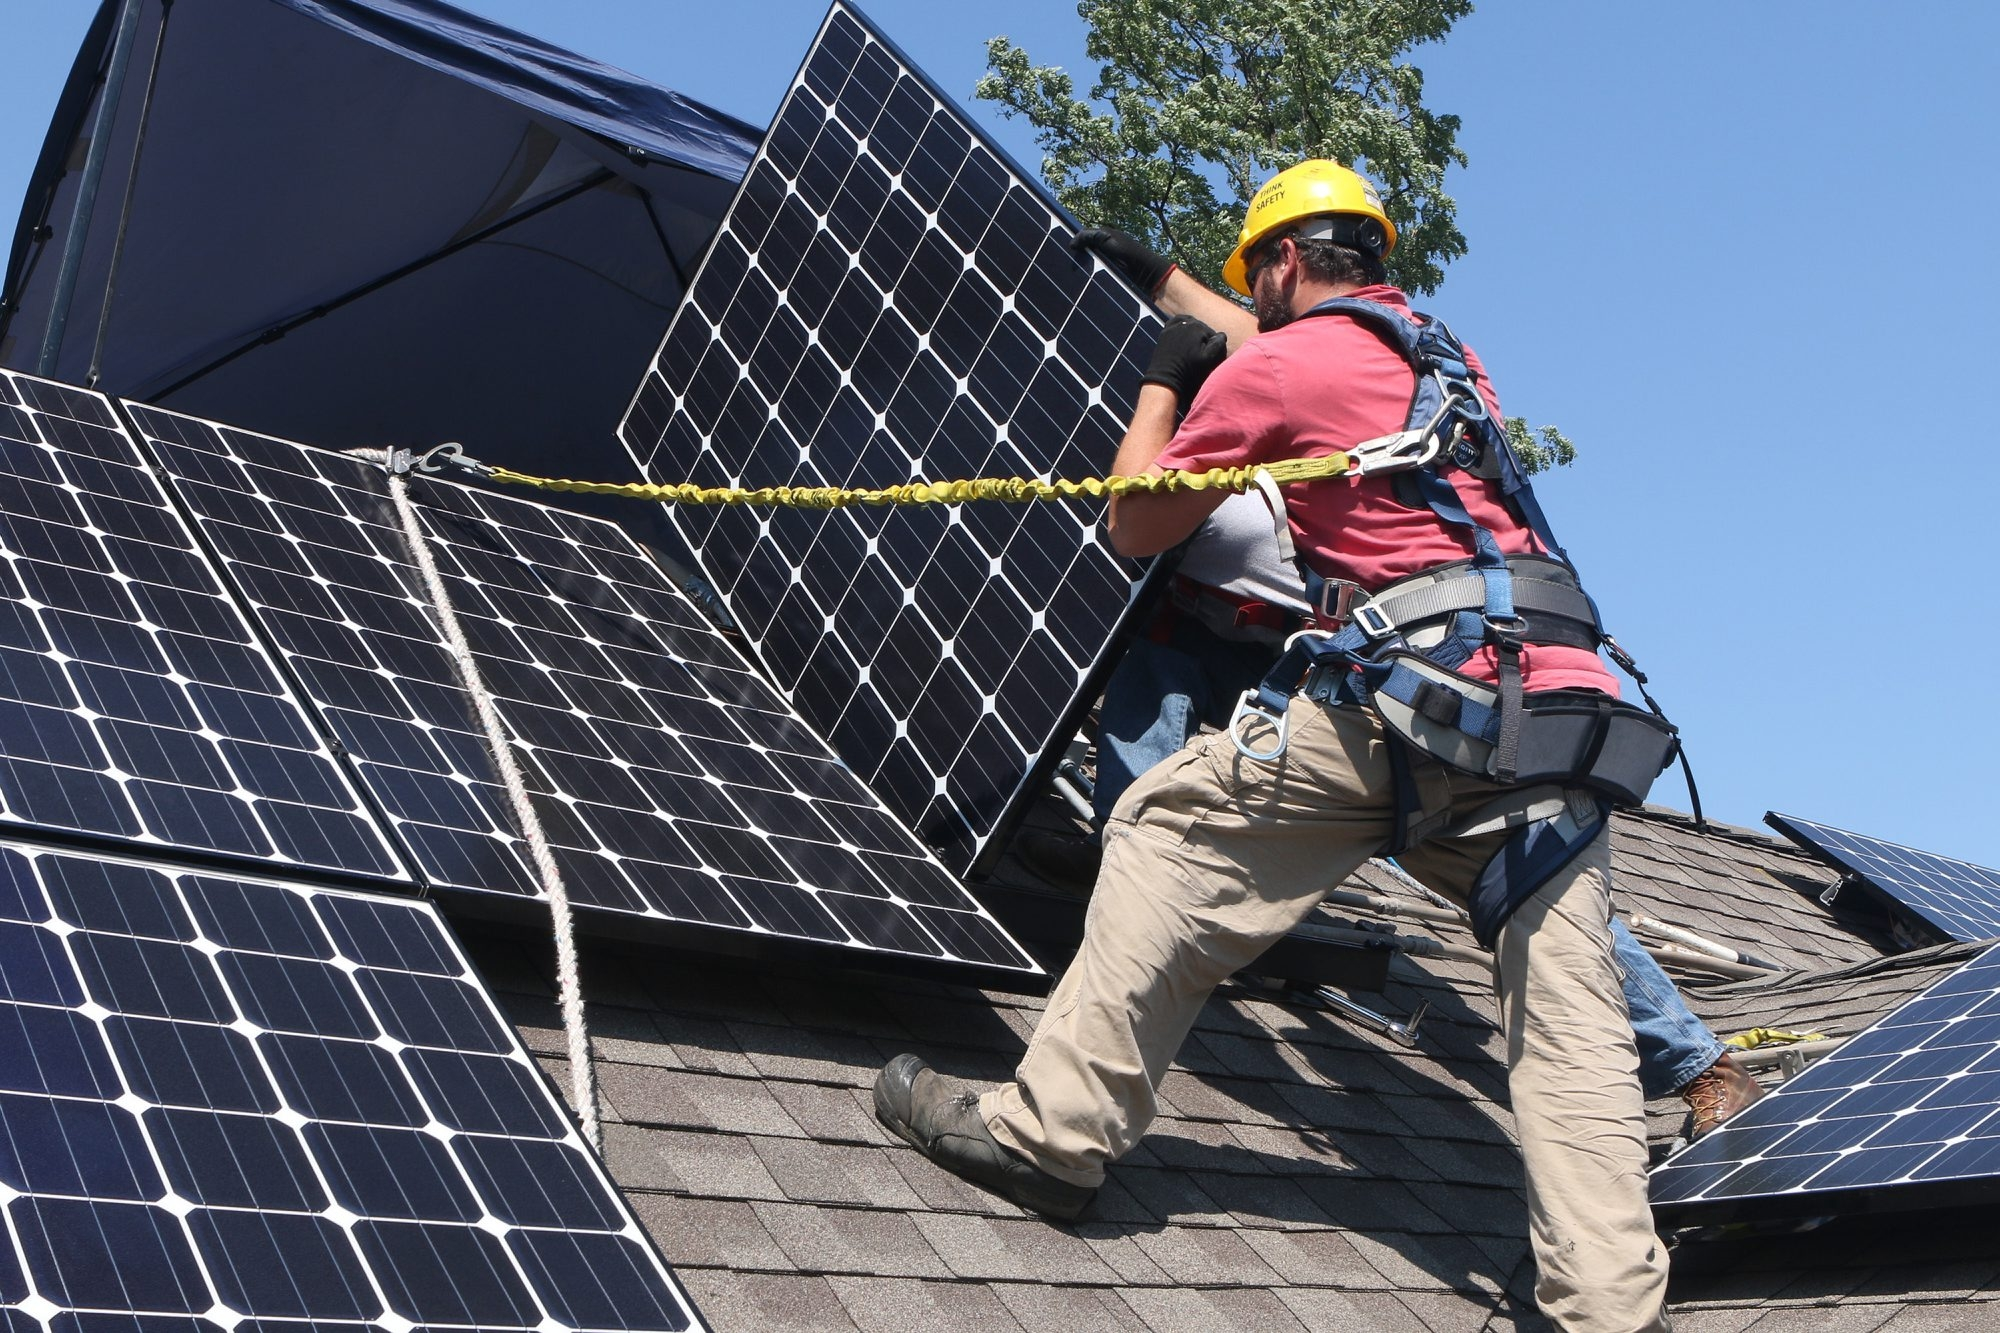 Solar Service Inc. workers install photovoltaic solar electric panels on the roof of a home in Park Ridge, Ill., on Sept. 10, 2013.